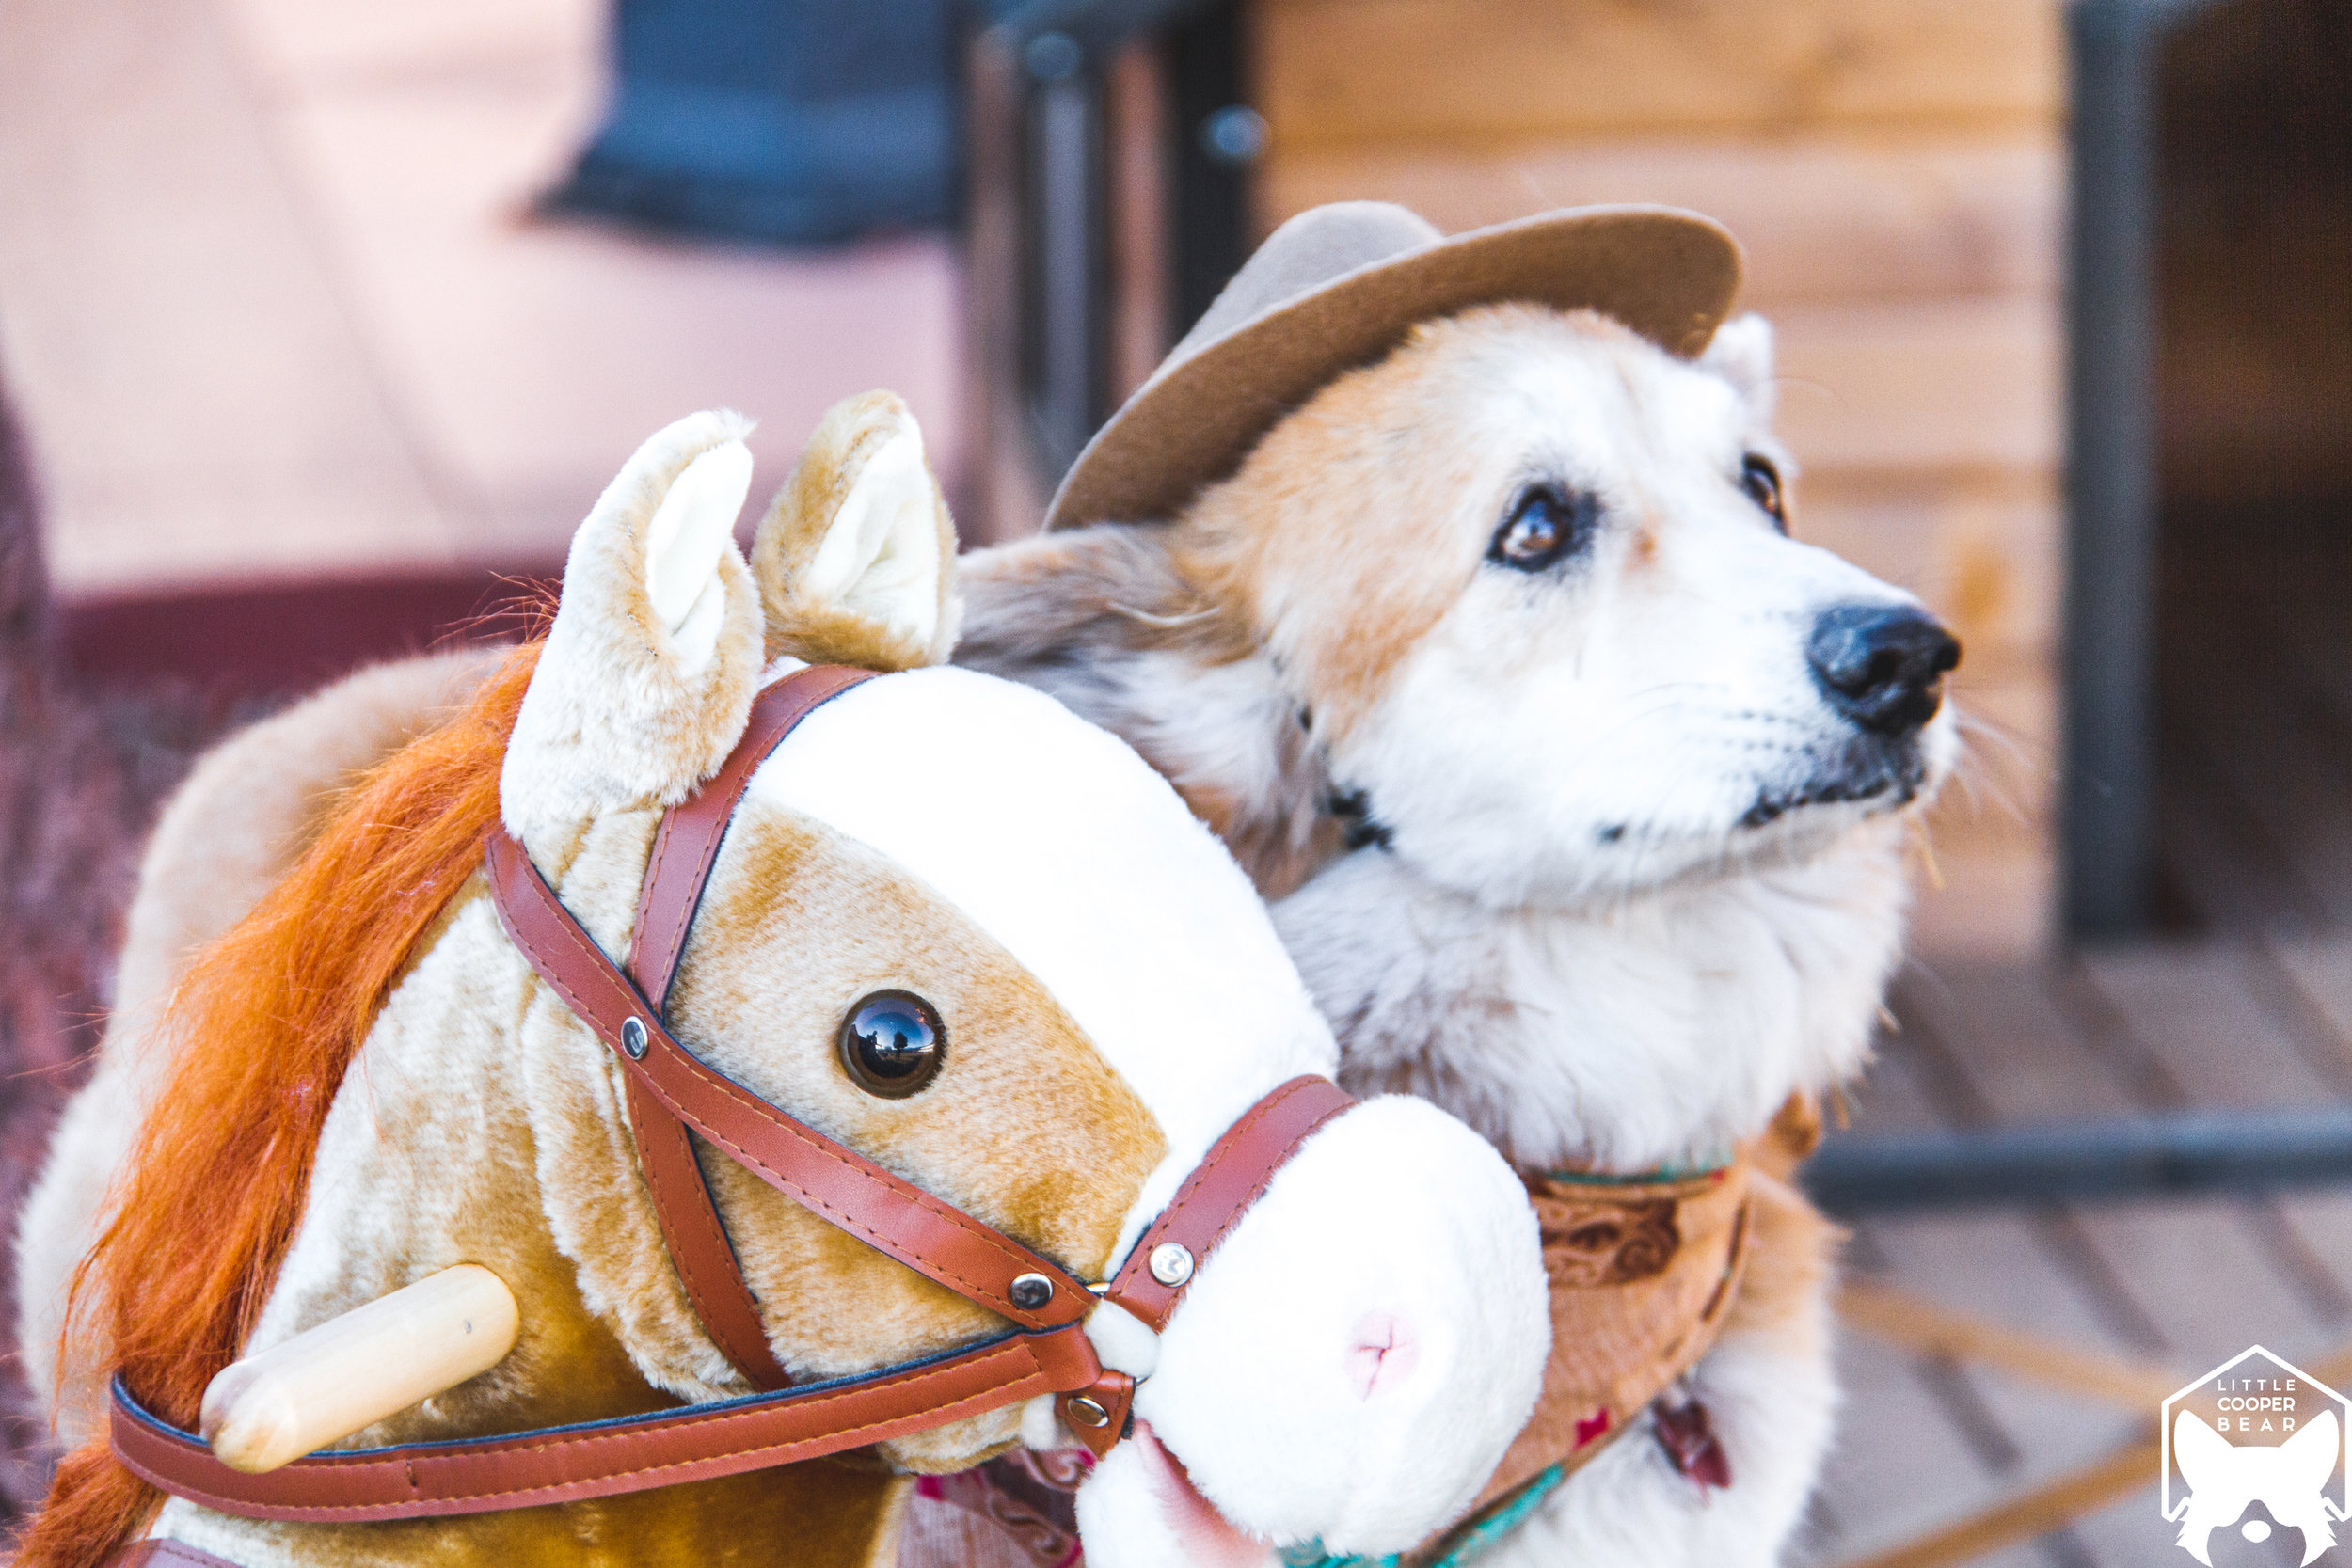 Cowboy and his trusty steed.